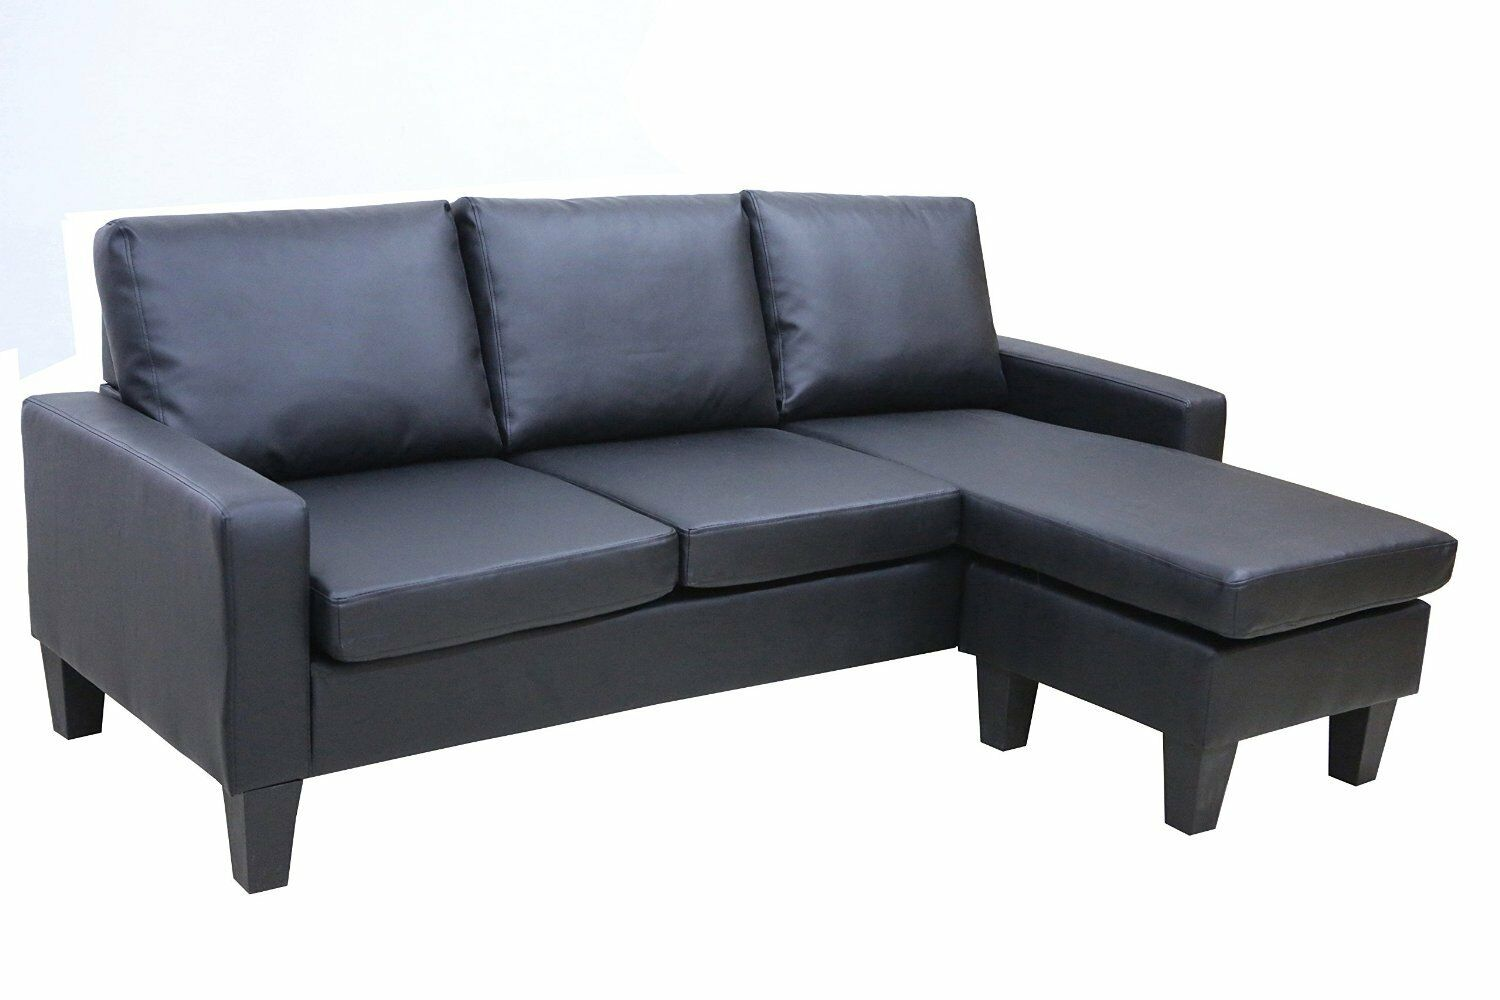 Black leather sectional sofa w reversible chaise lounge for Contemporary chaise lounge sofa